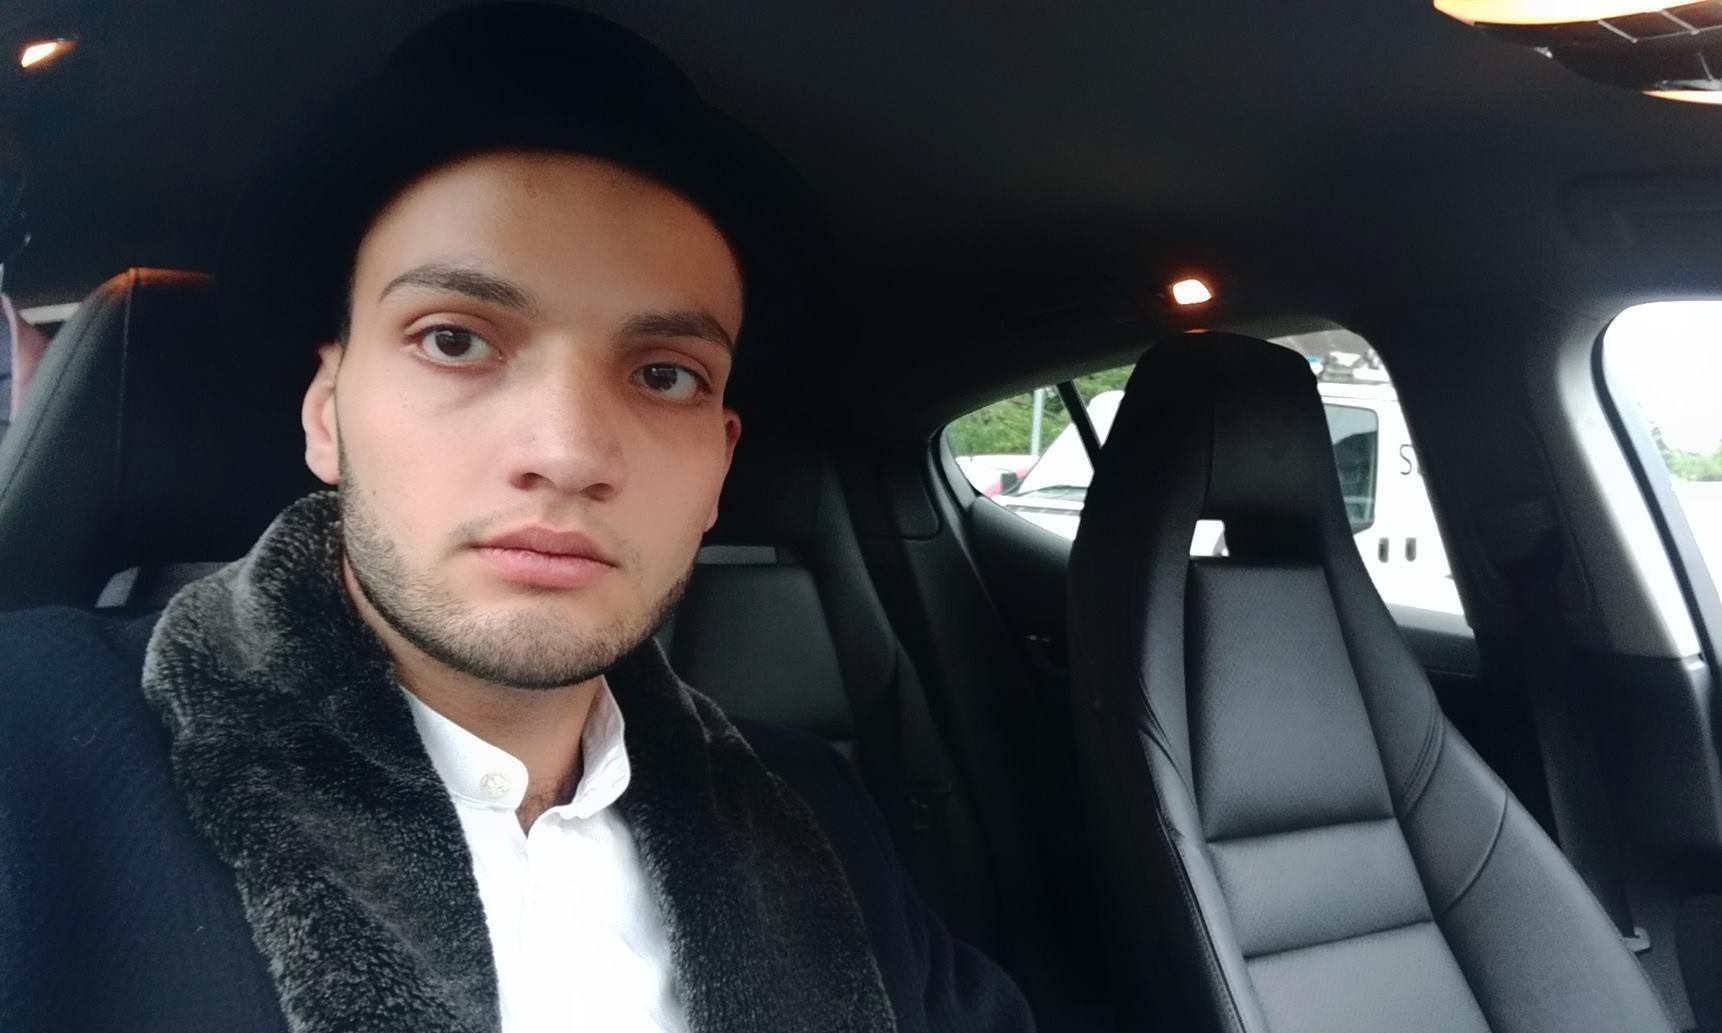 Relatives of Parsons Green tube attack suspect voice shock at his arrest